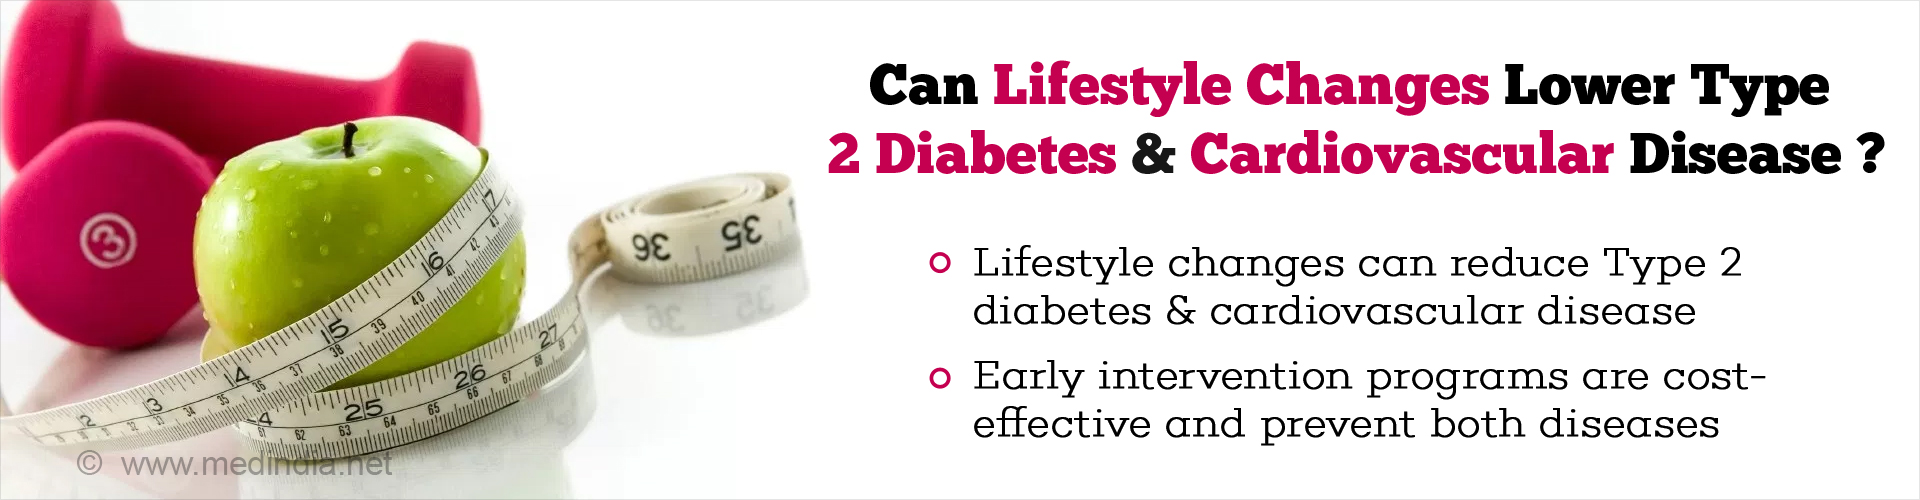 Early Lifestyle Changes Lower Type 2 Diabetes, Cardiovascular Disease